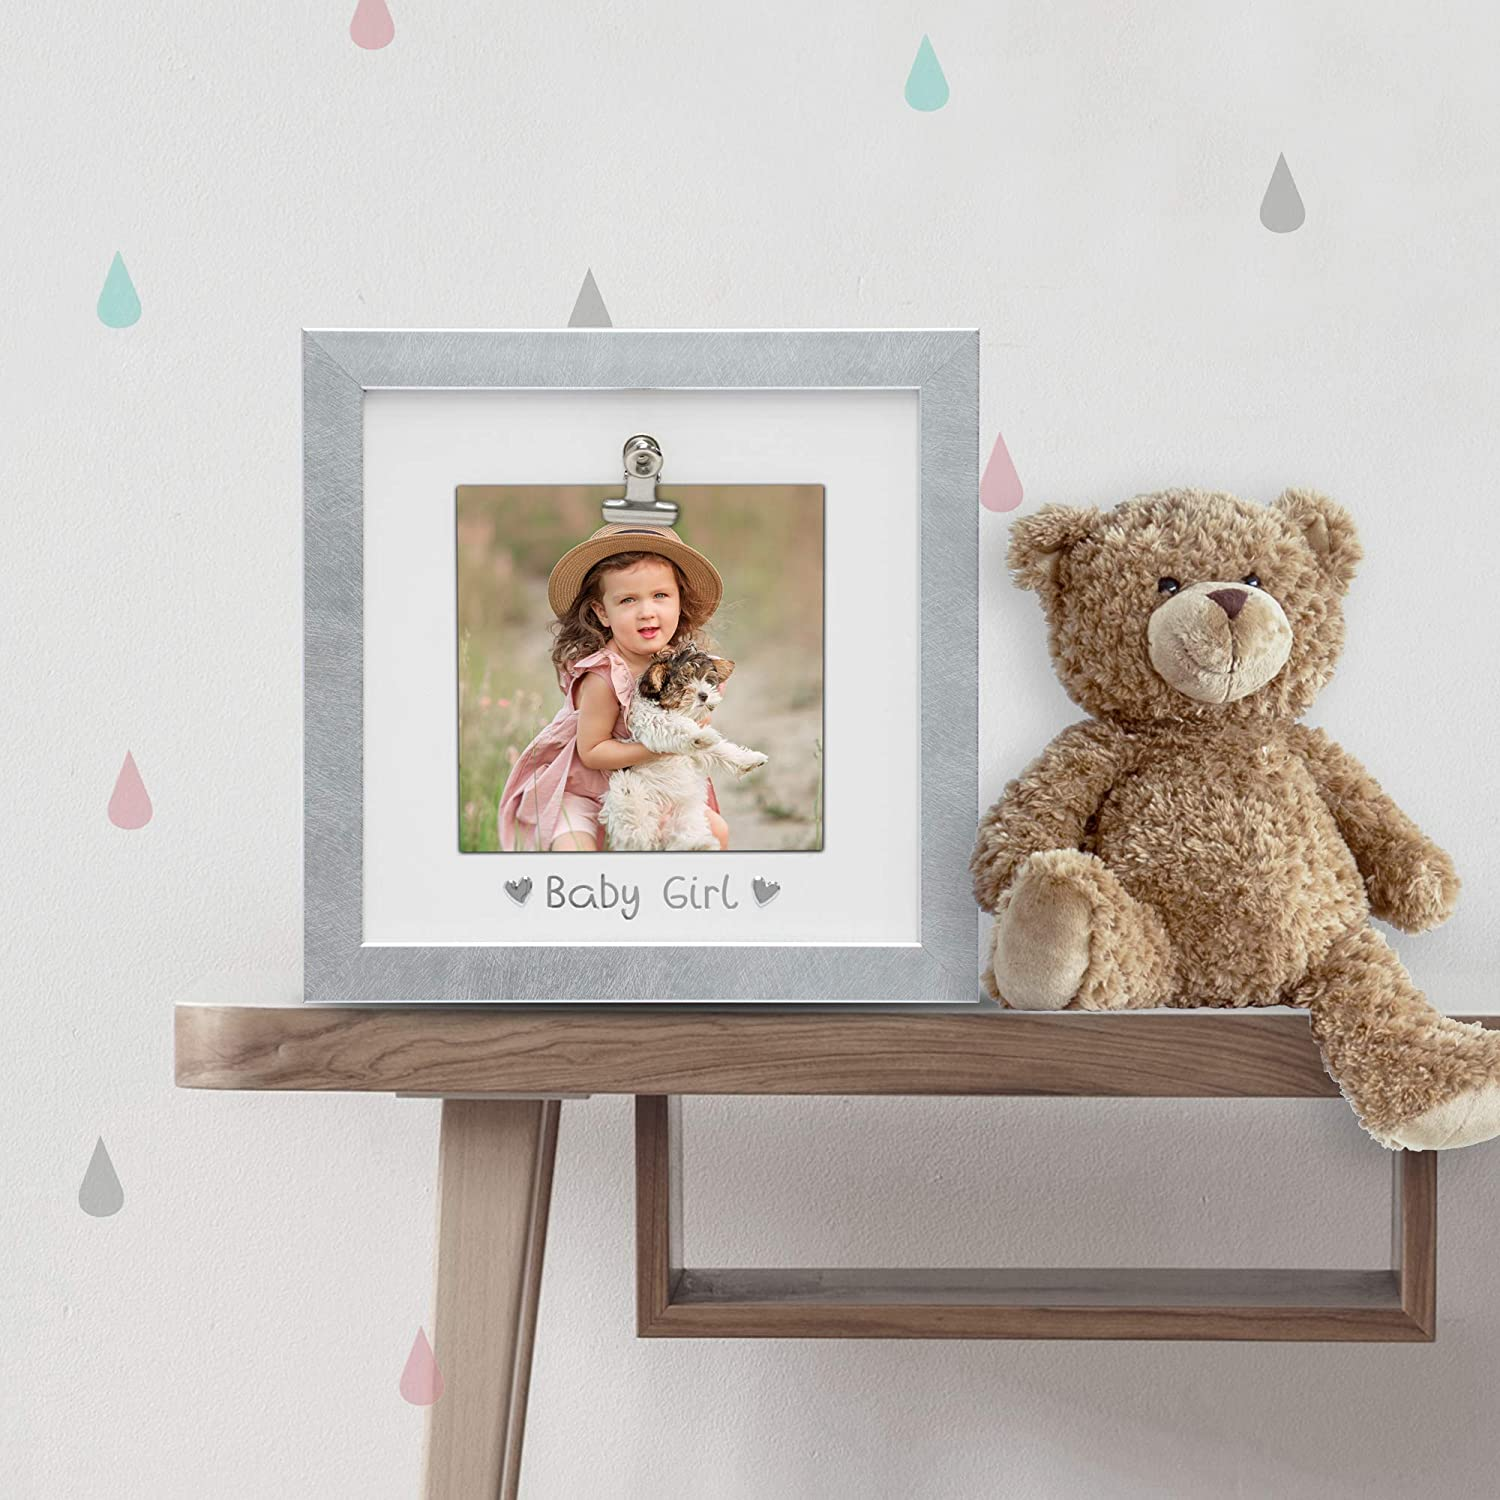 MIMOSA MOMENTS Baby Girl Clip Picture Frame Wood Finish in Gray 6x4, Gray-Baby Girl